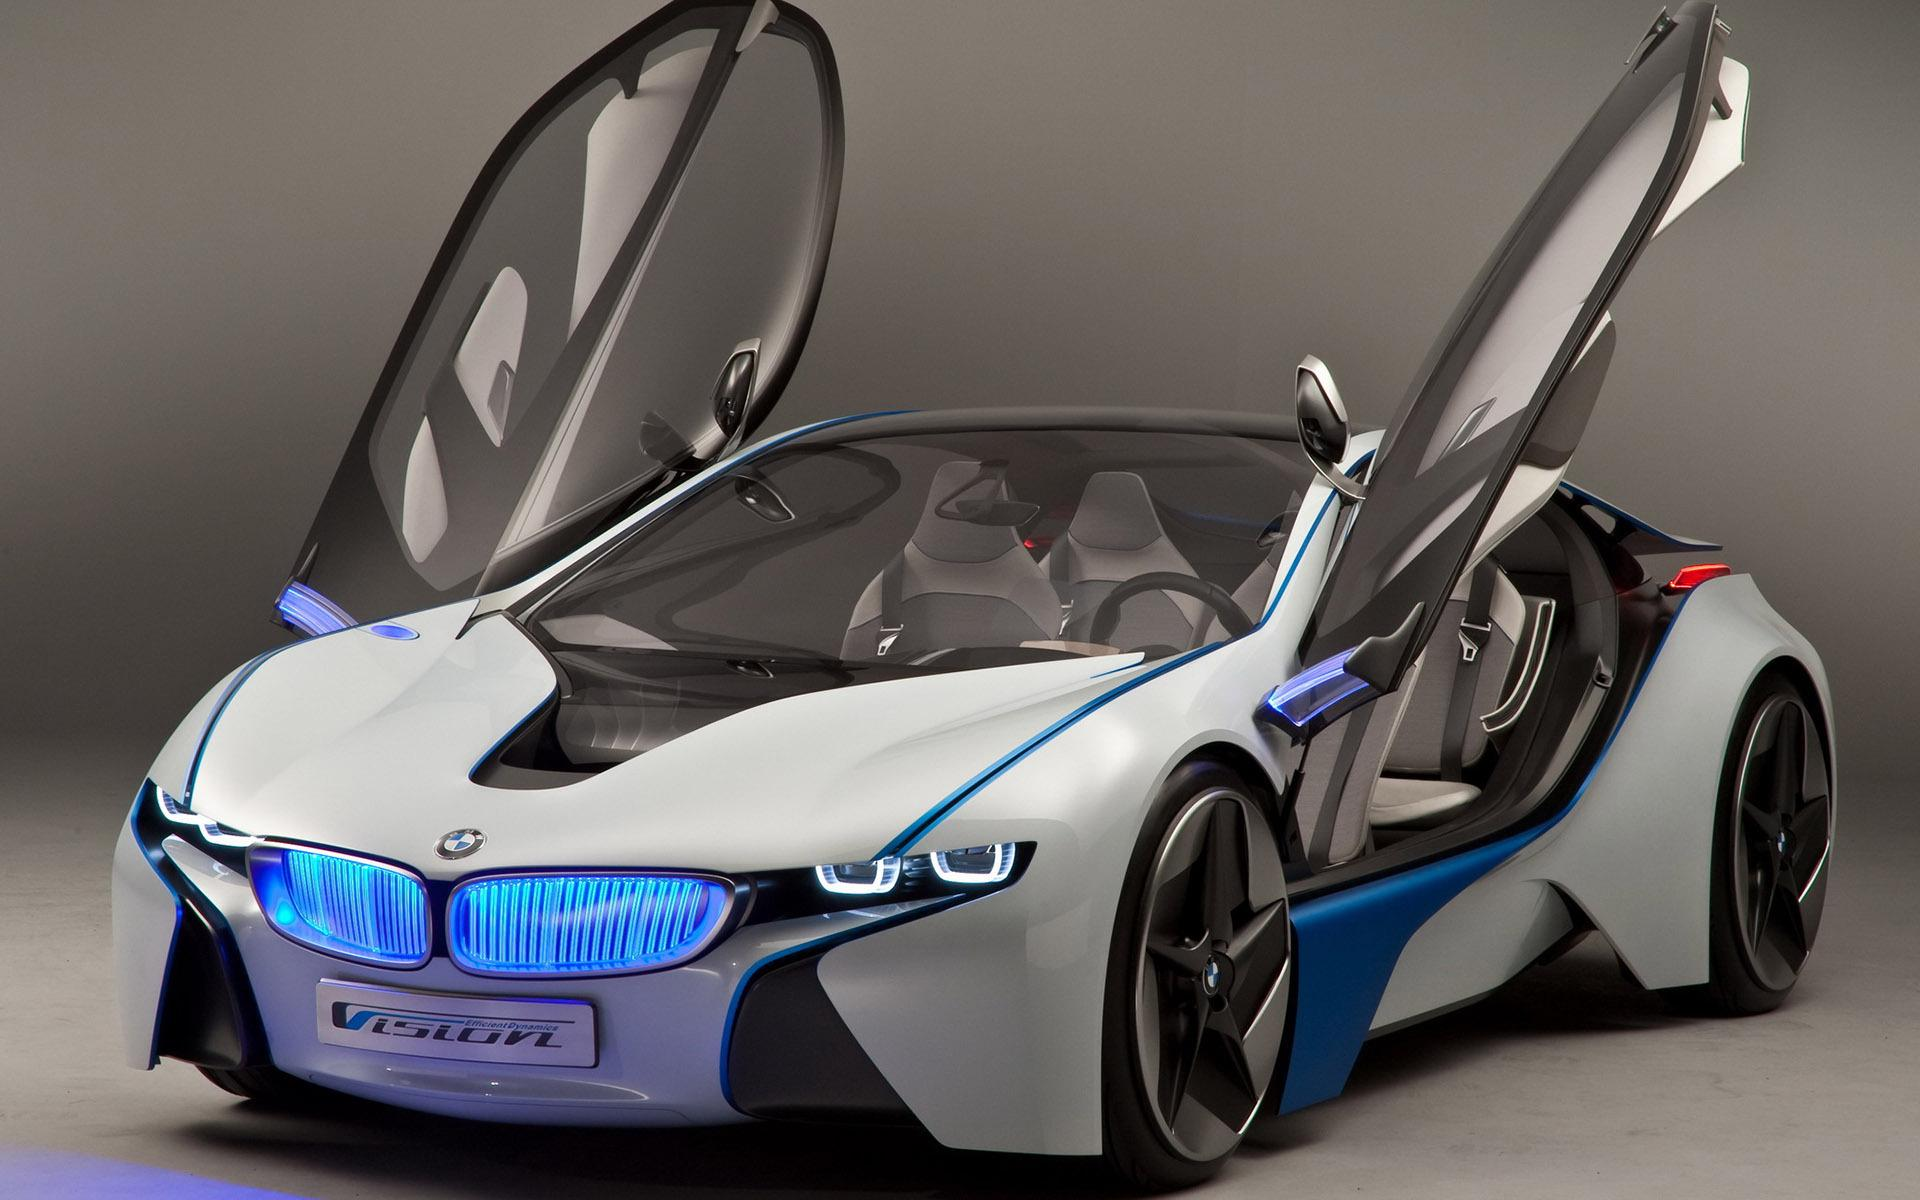 Good Night 3d Moving Wallpaper Hd Bmw I8 With Open Doors Wallpaper Download Free 148907